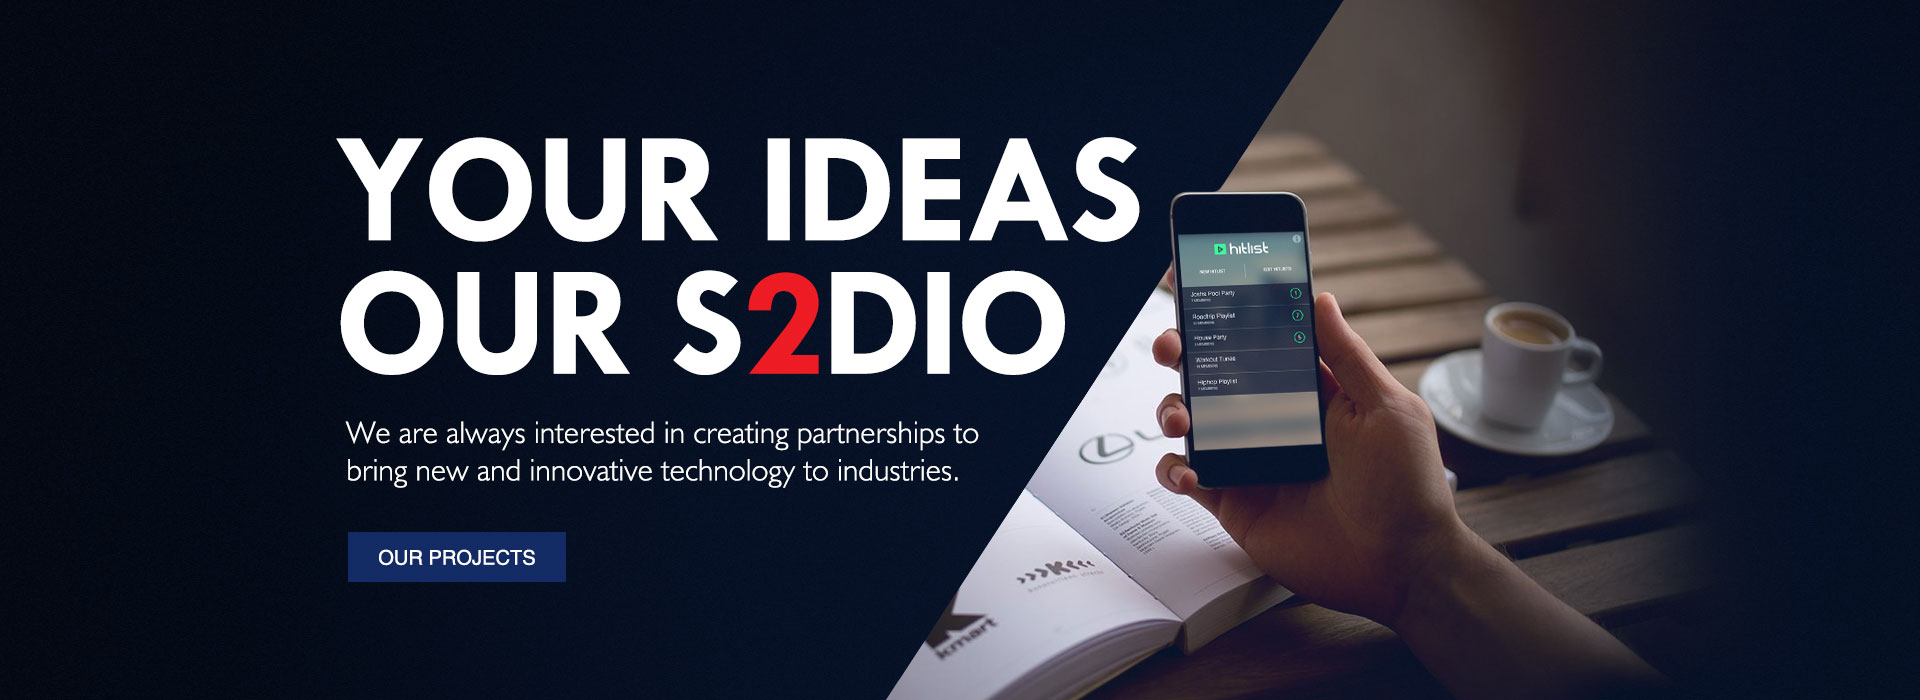 Your ideas our S2dio